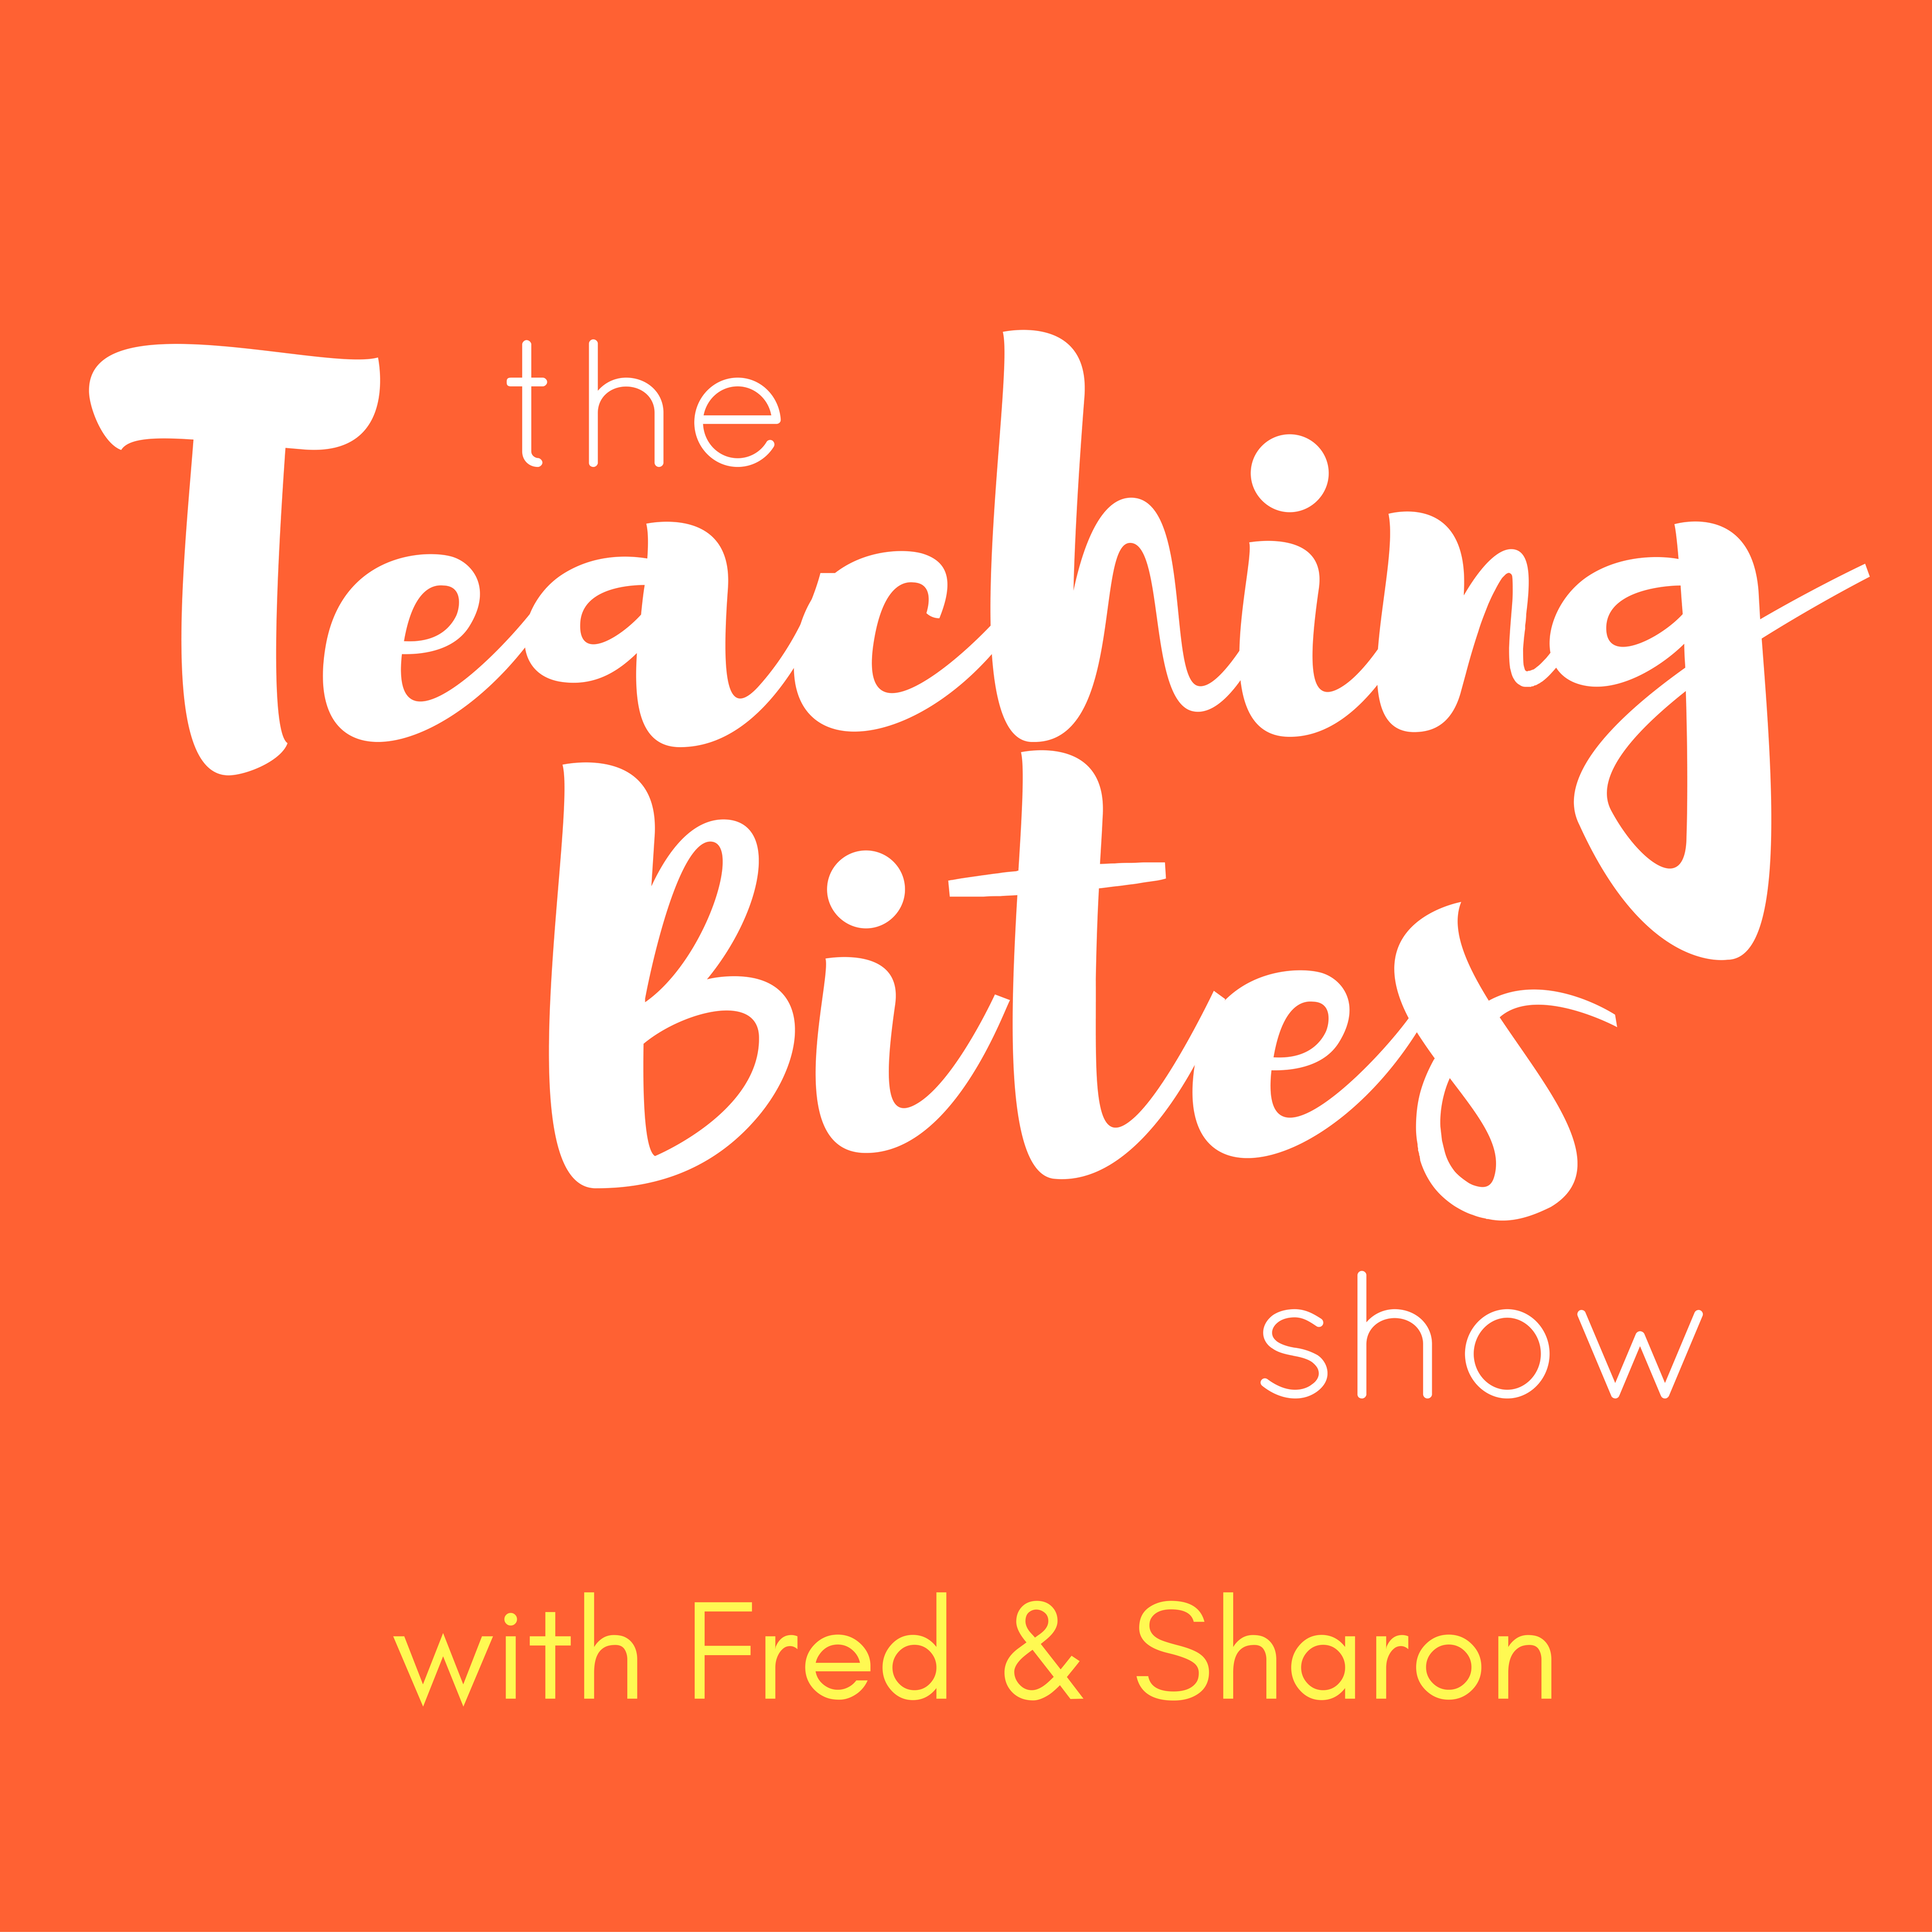 The Teaching Bites Show | Connect with People & Ideas to Take Your Teaching to the Next Level | How Teachers Succeed Everyday